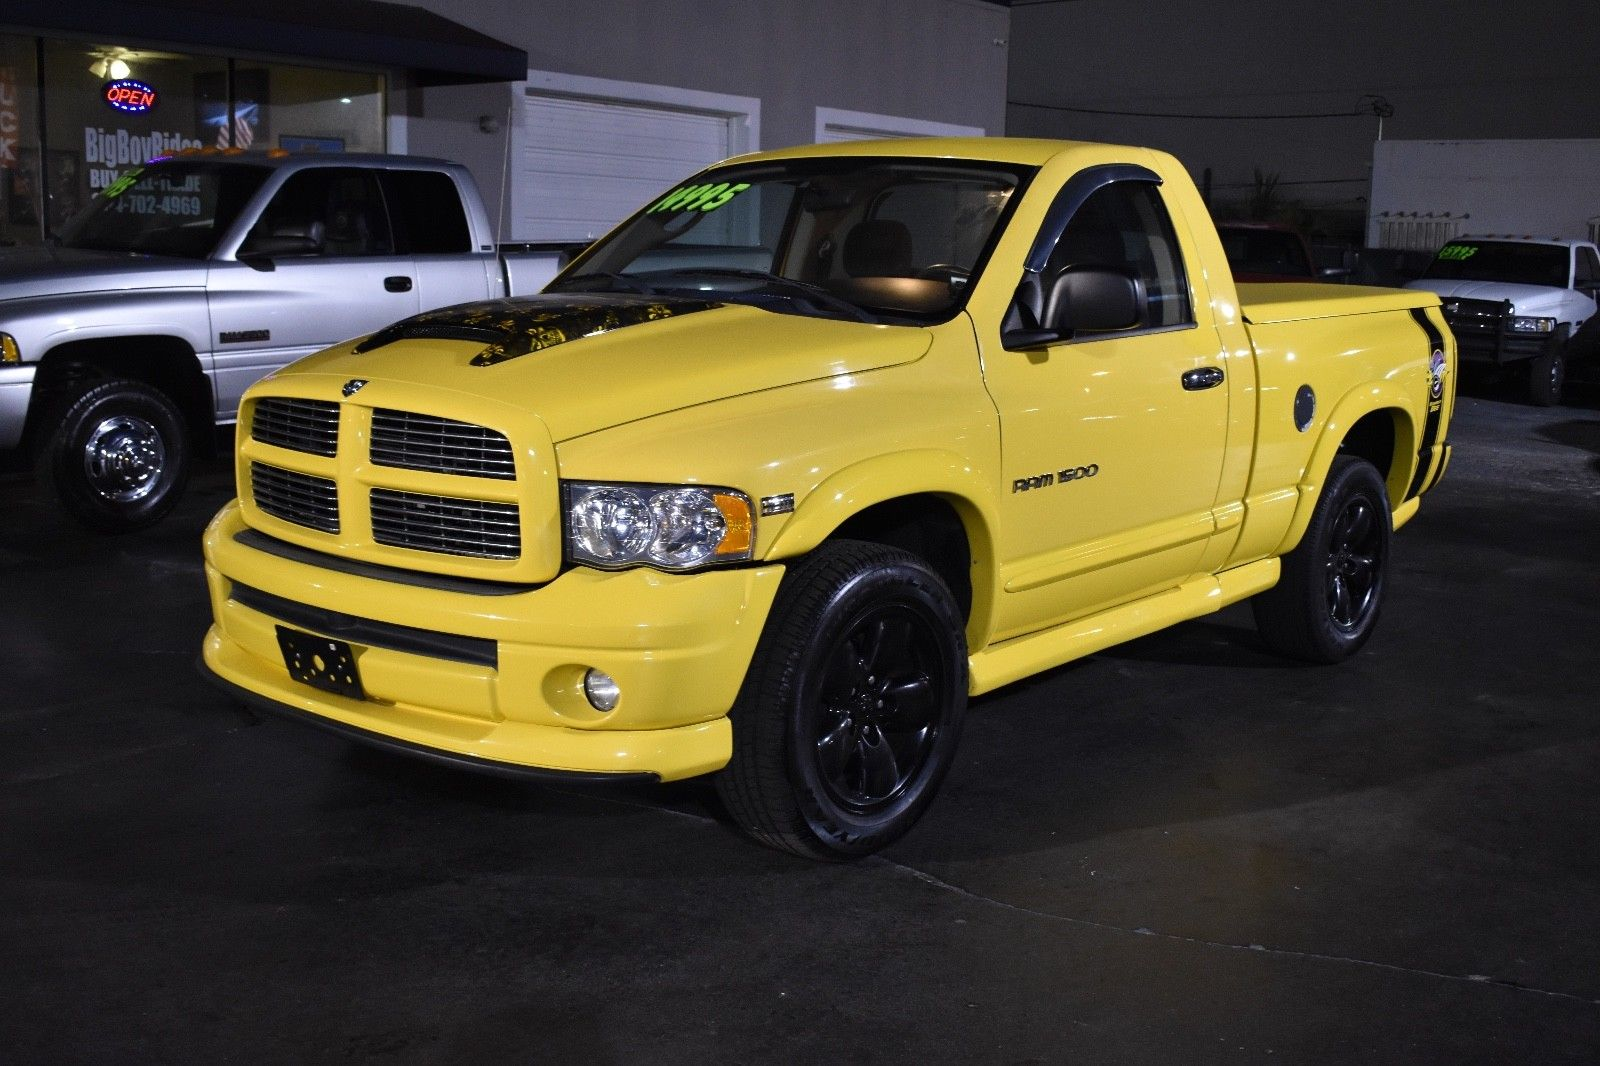 Dodge Ram Rumble Bee >> Great 2005 Dodge Ram 1500 Rumble Bee Hemi 2005 Dodge Ram 1500 5 7 Hemi Rumble Bee Limited Edition 4x4 Shipping Available 2017 2018